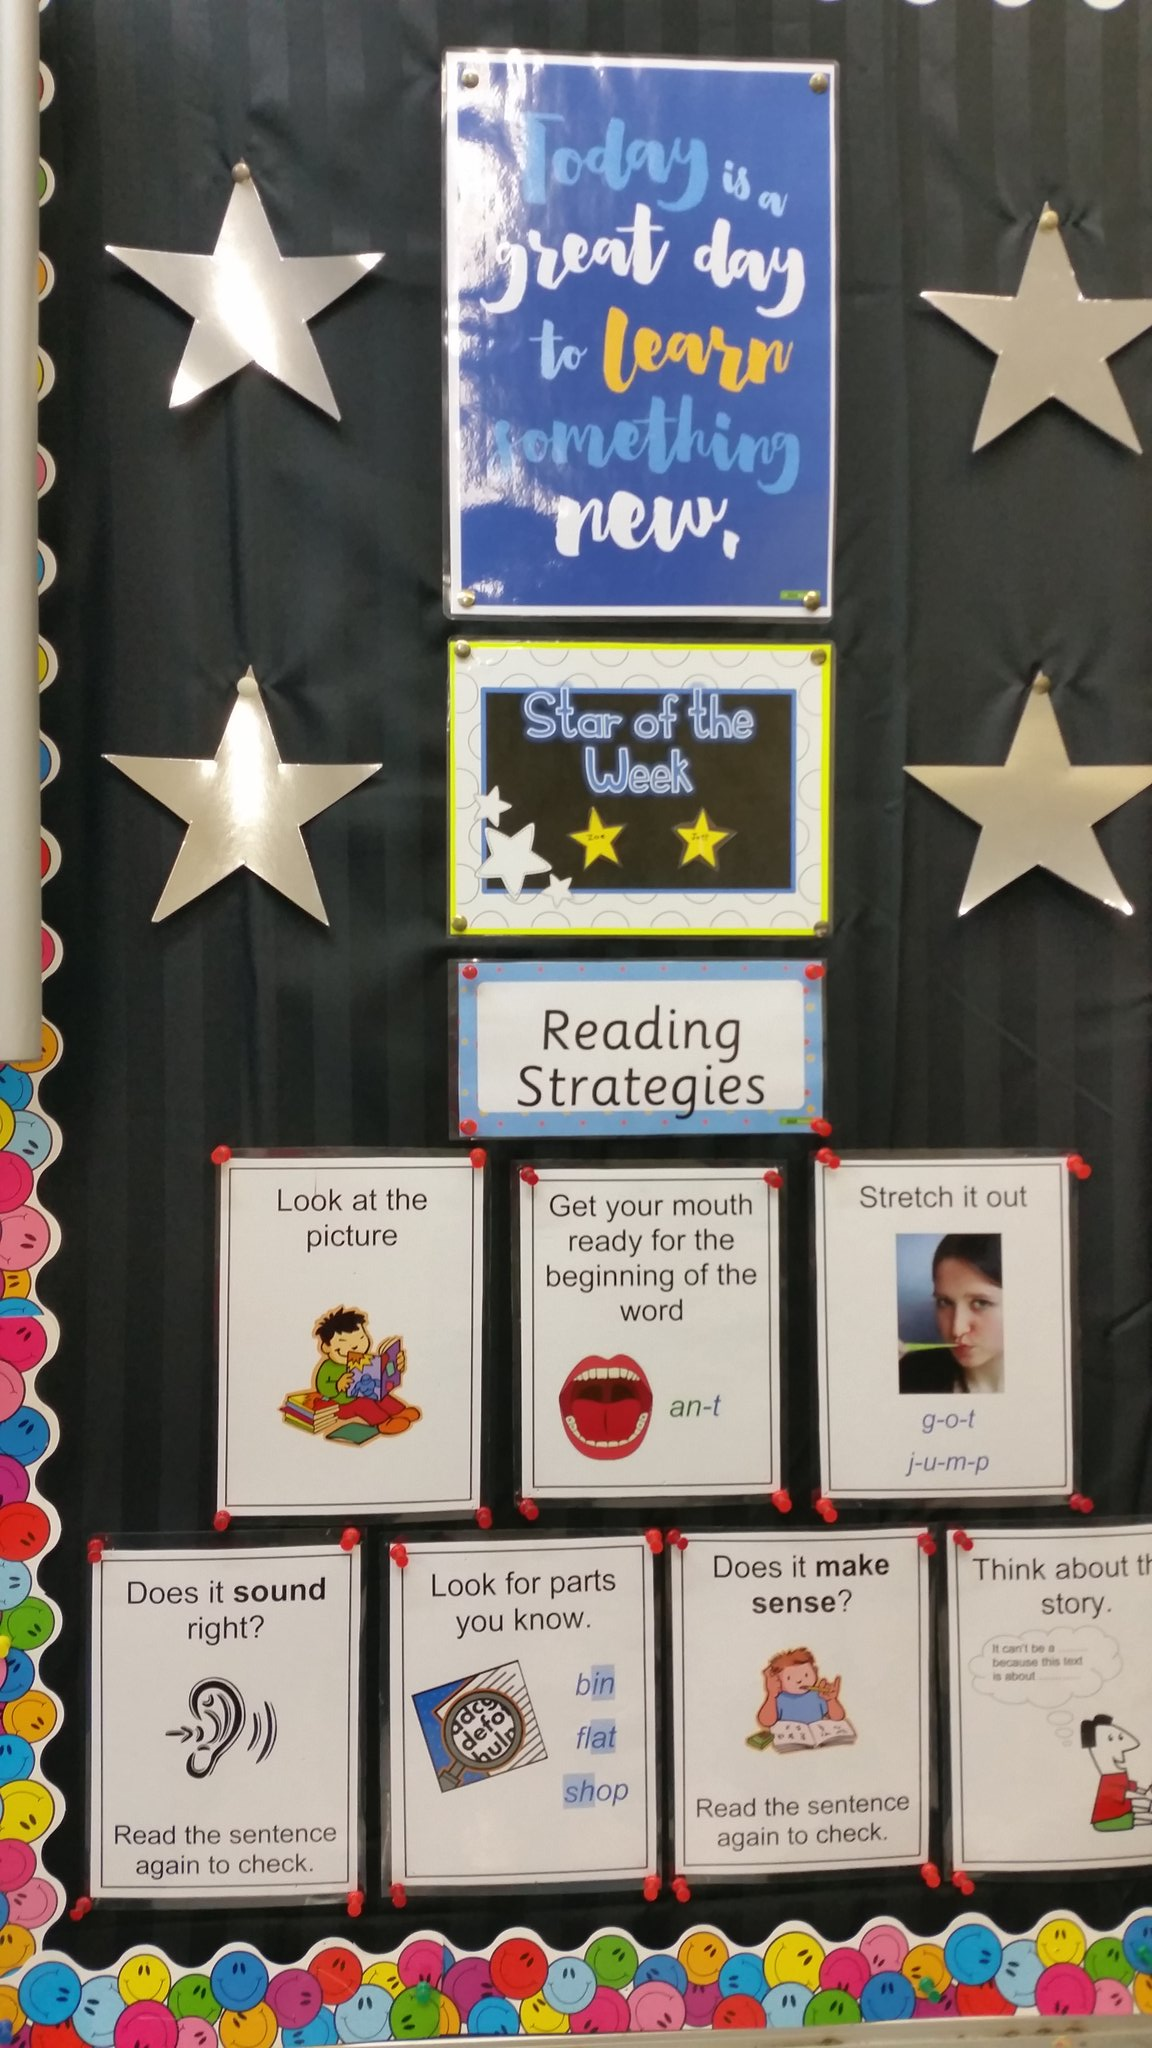 In reading groups, we focus on applying reading strategies to decode the text, while also increasing comprehension and fluency. #flssip https://t.co/Gf3cCJGeun